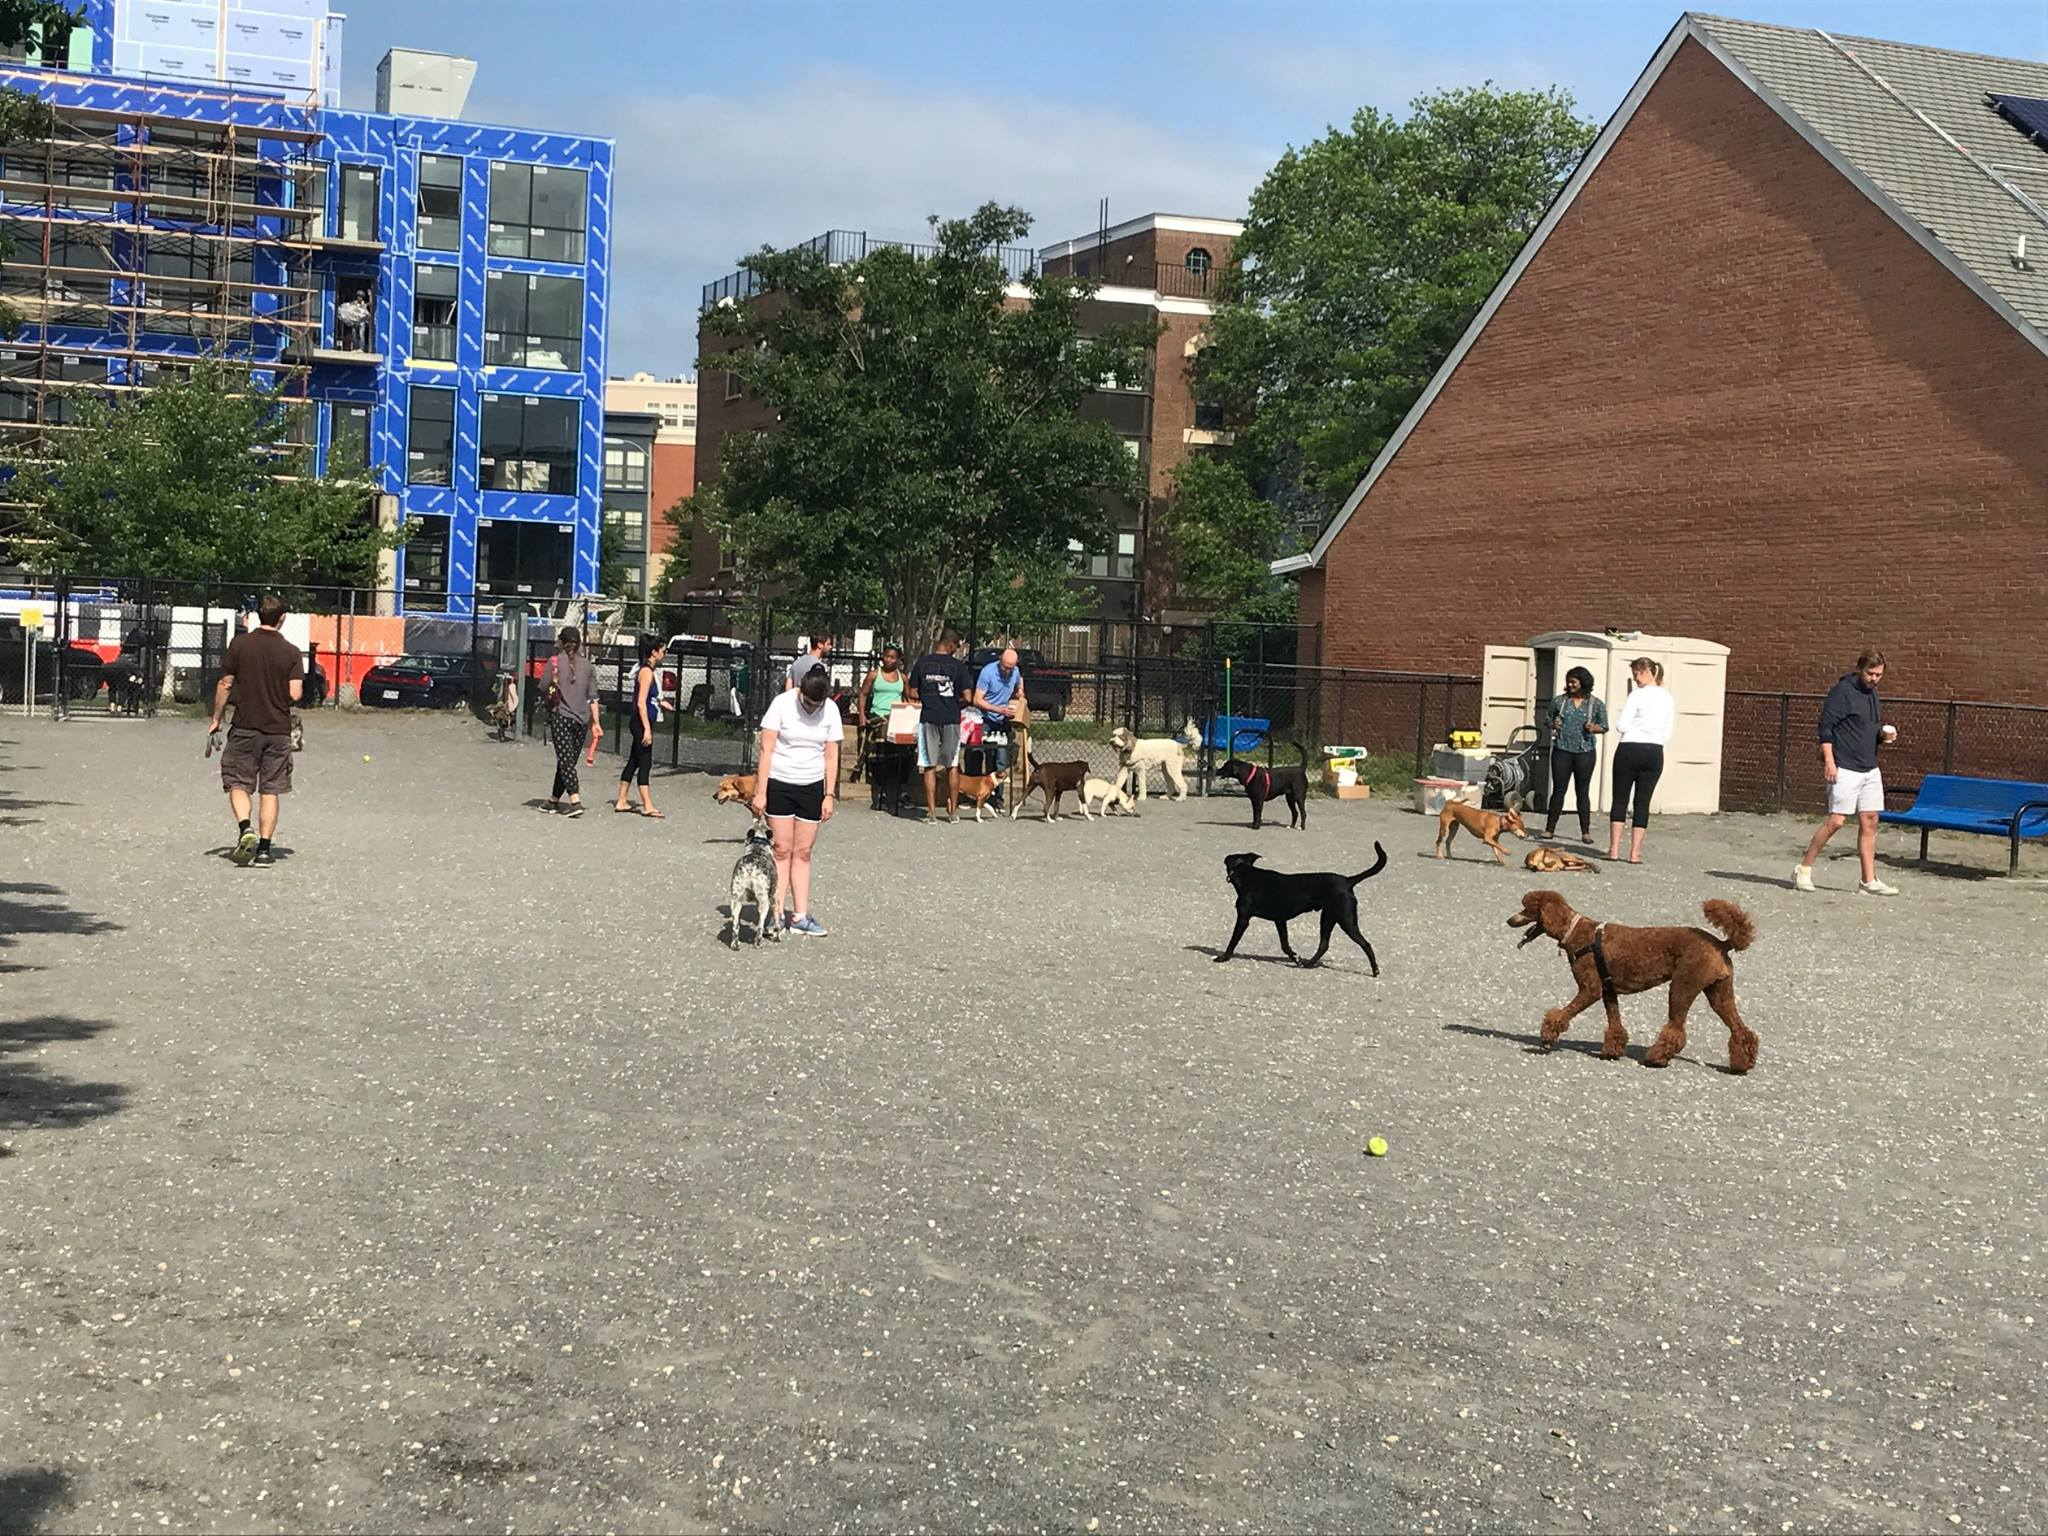 Head to one of these dog parks in the DMV to soak up that first bit of sunshine and let your dog run free with their four-legged friends. (Image: Courtesy Shaw Dog Park)